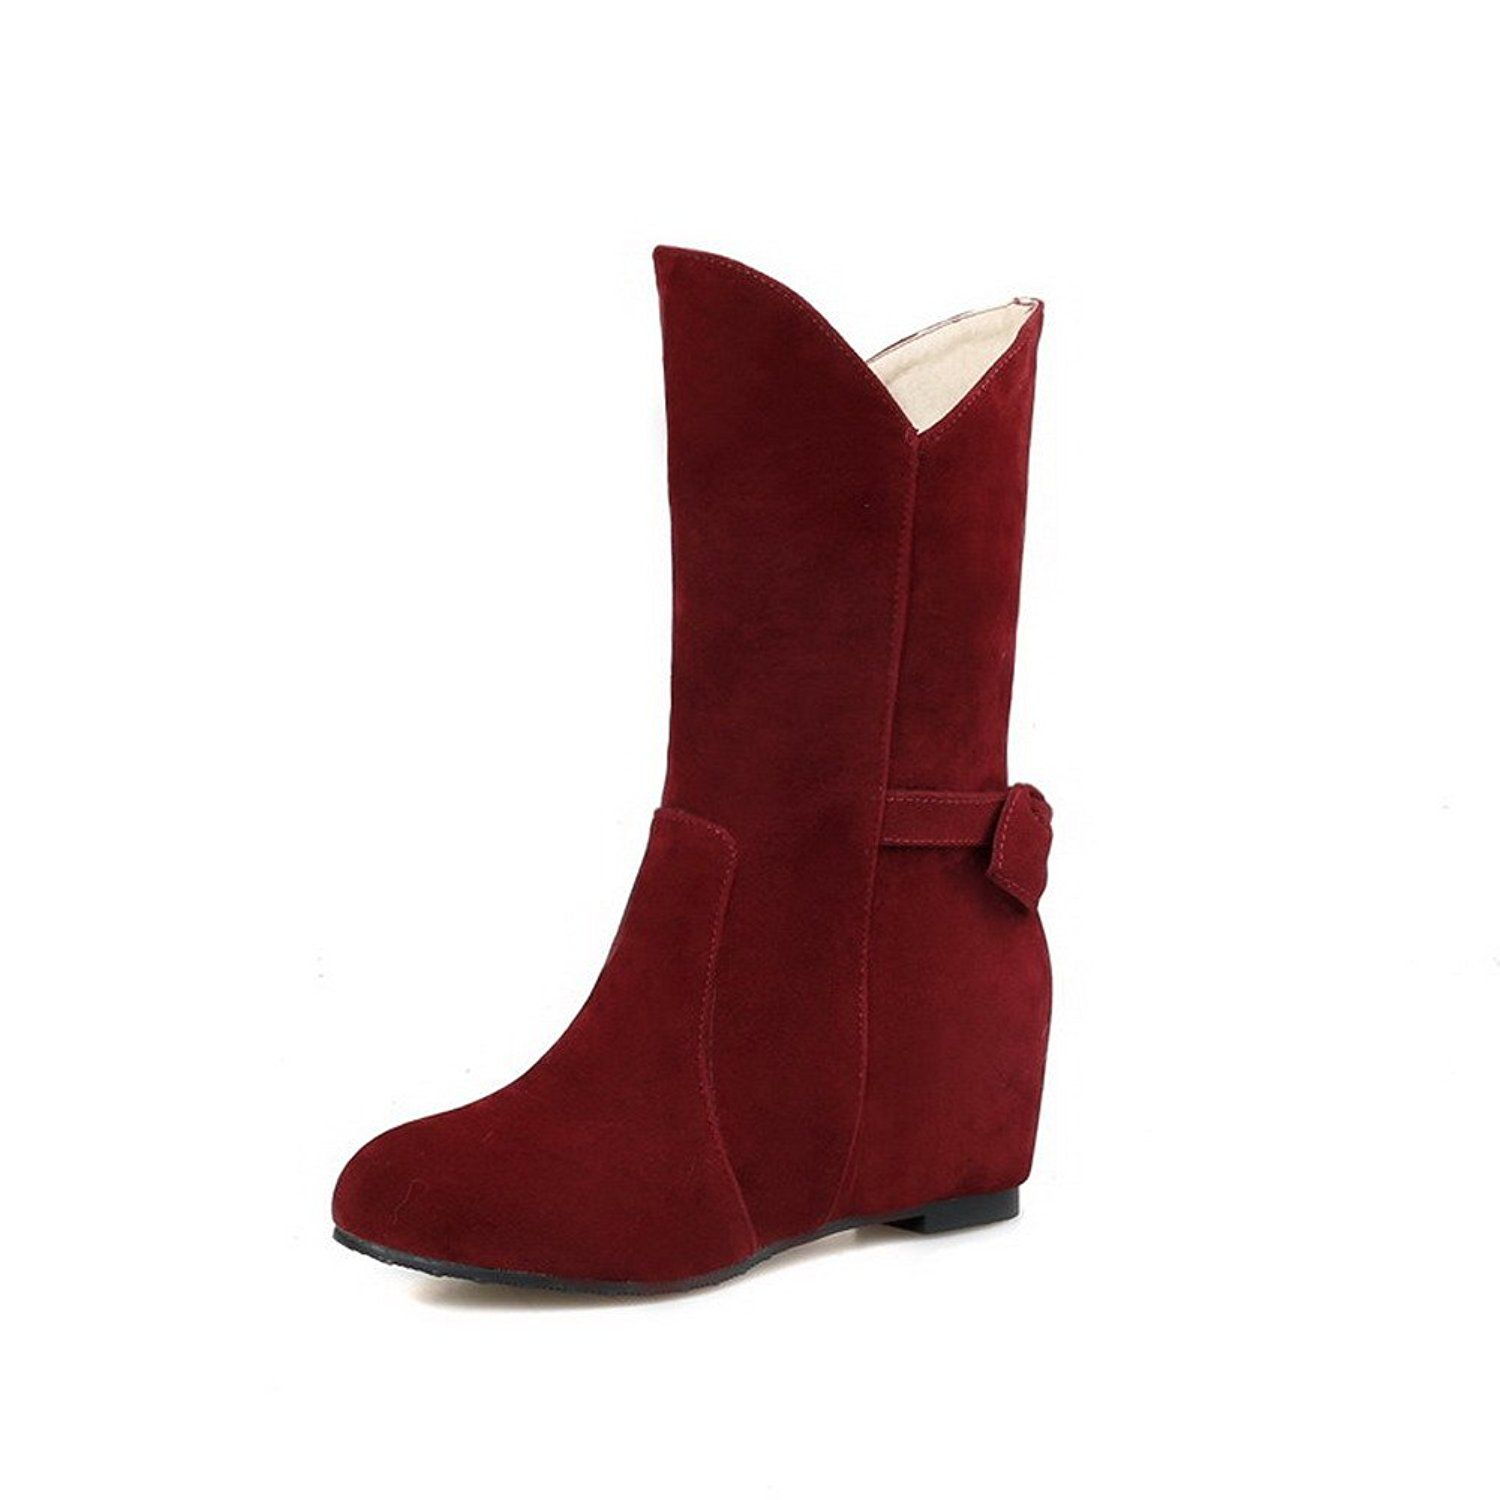 WeiPoot Womens Solid PU Kitten-Heels Pull-on Round Closed Toe Boots